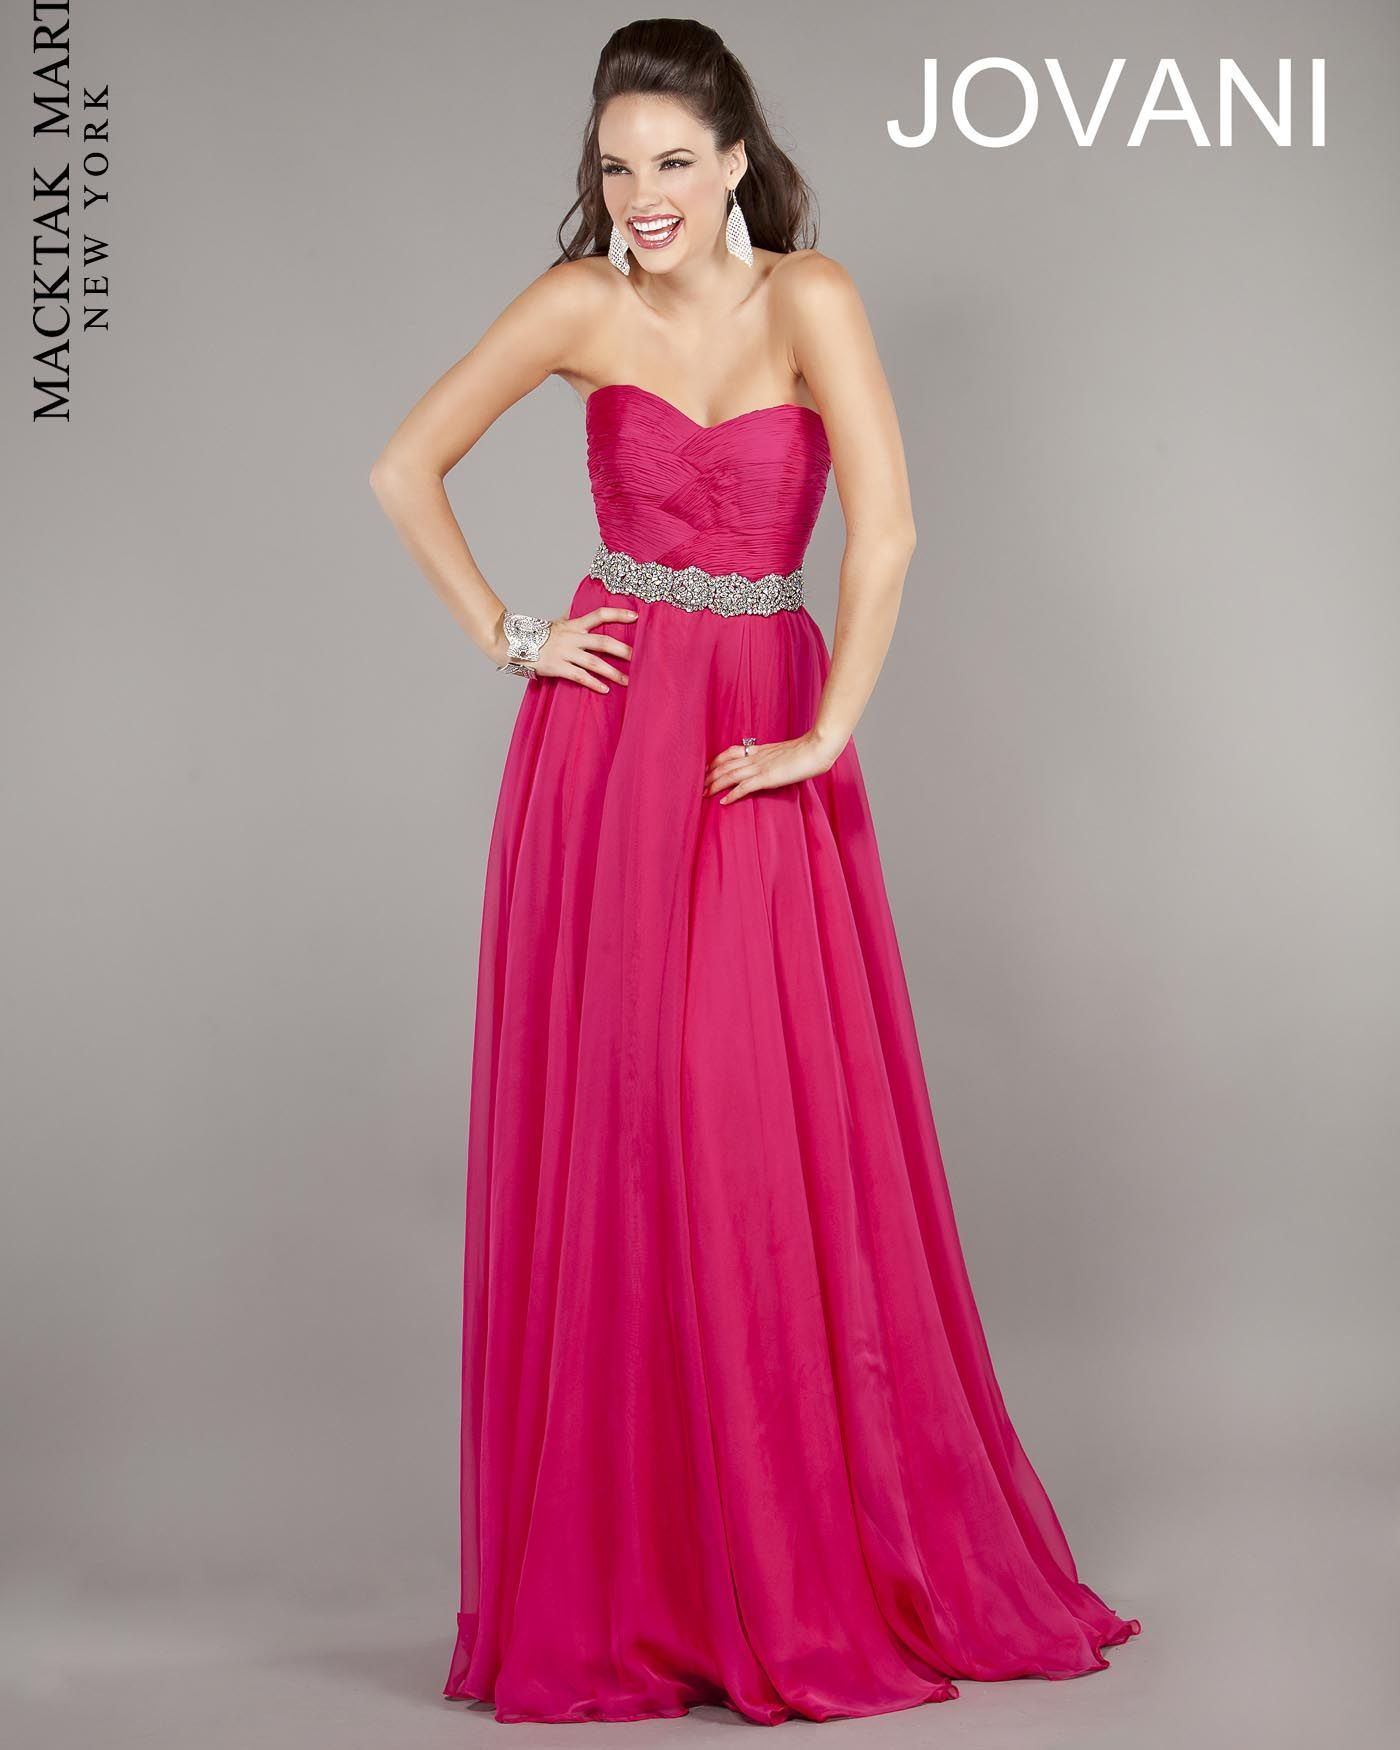 Jovani dress macktakmartjovanipromdresses